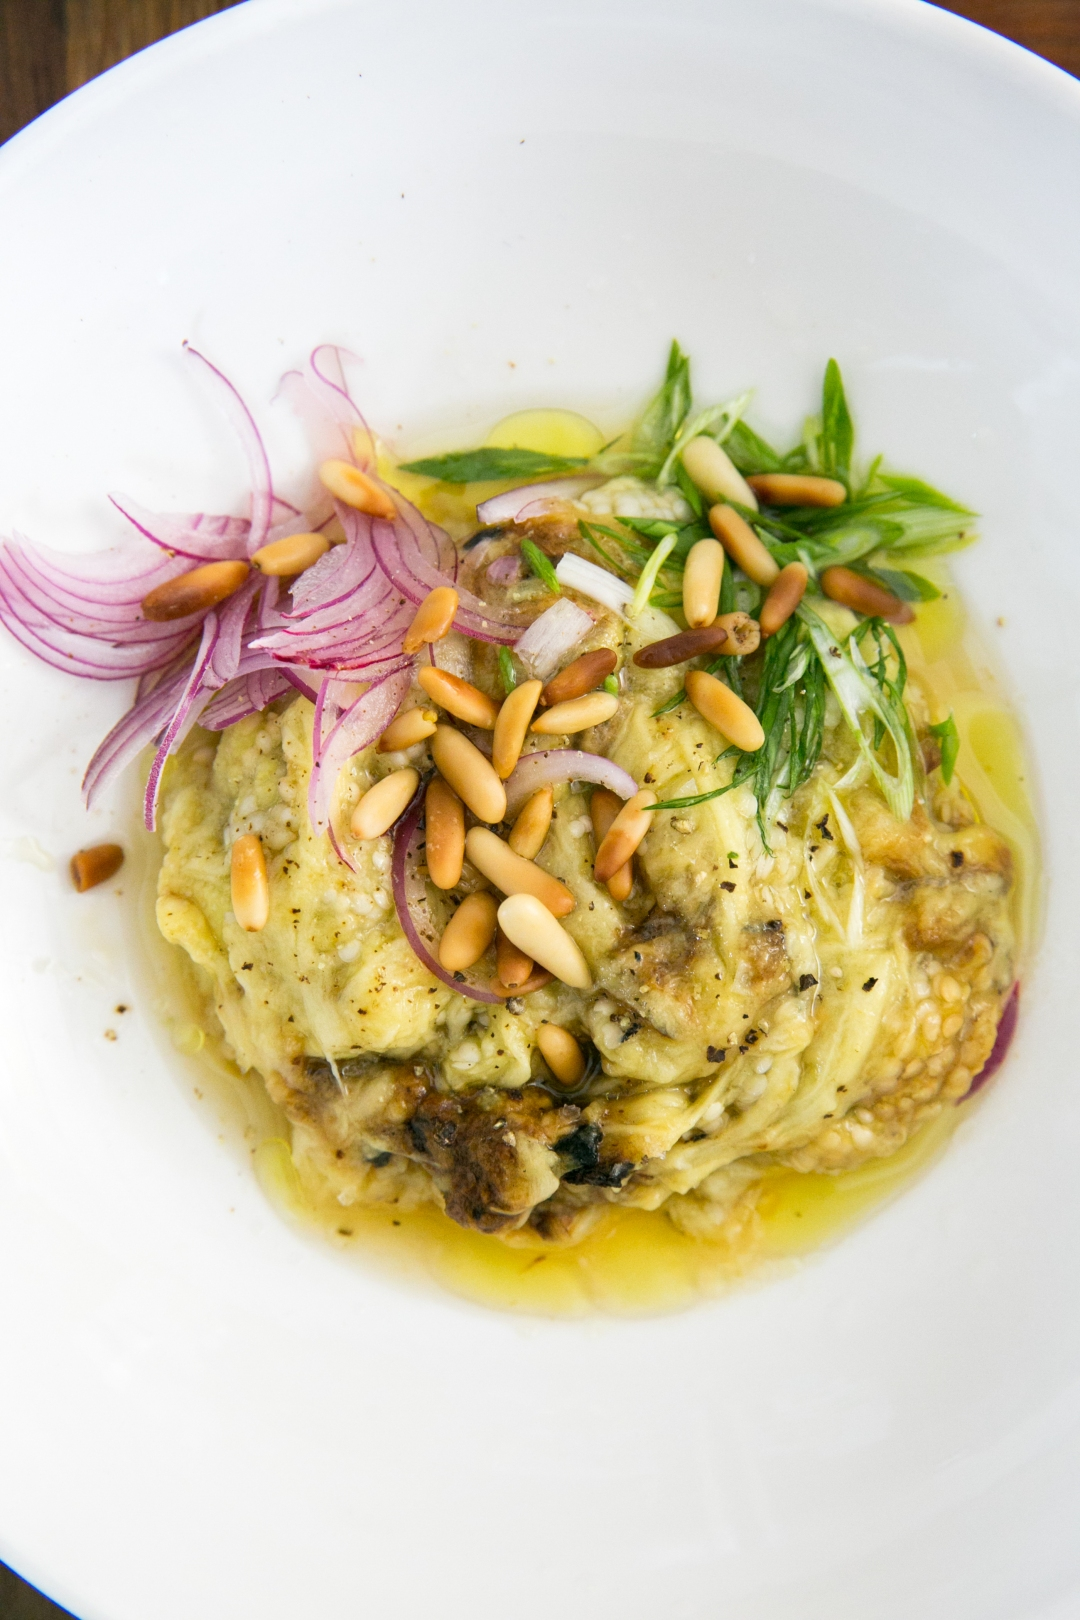 Eggplant with herbs and pine nuts